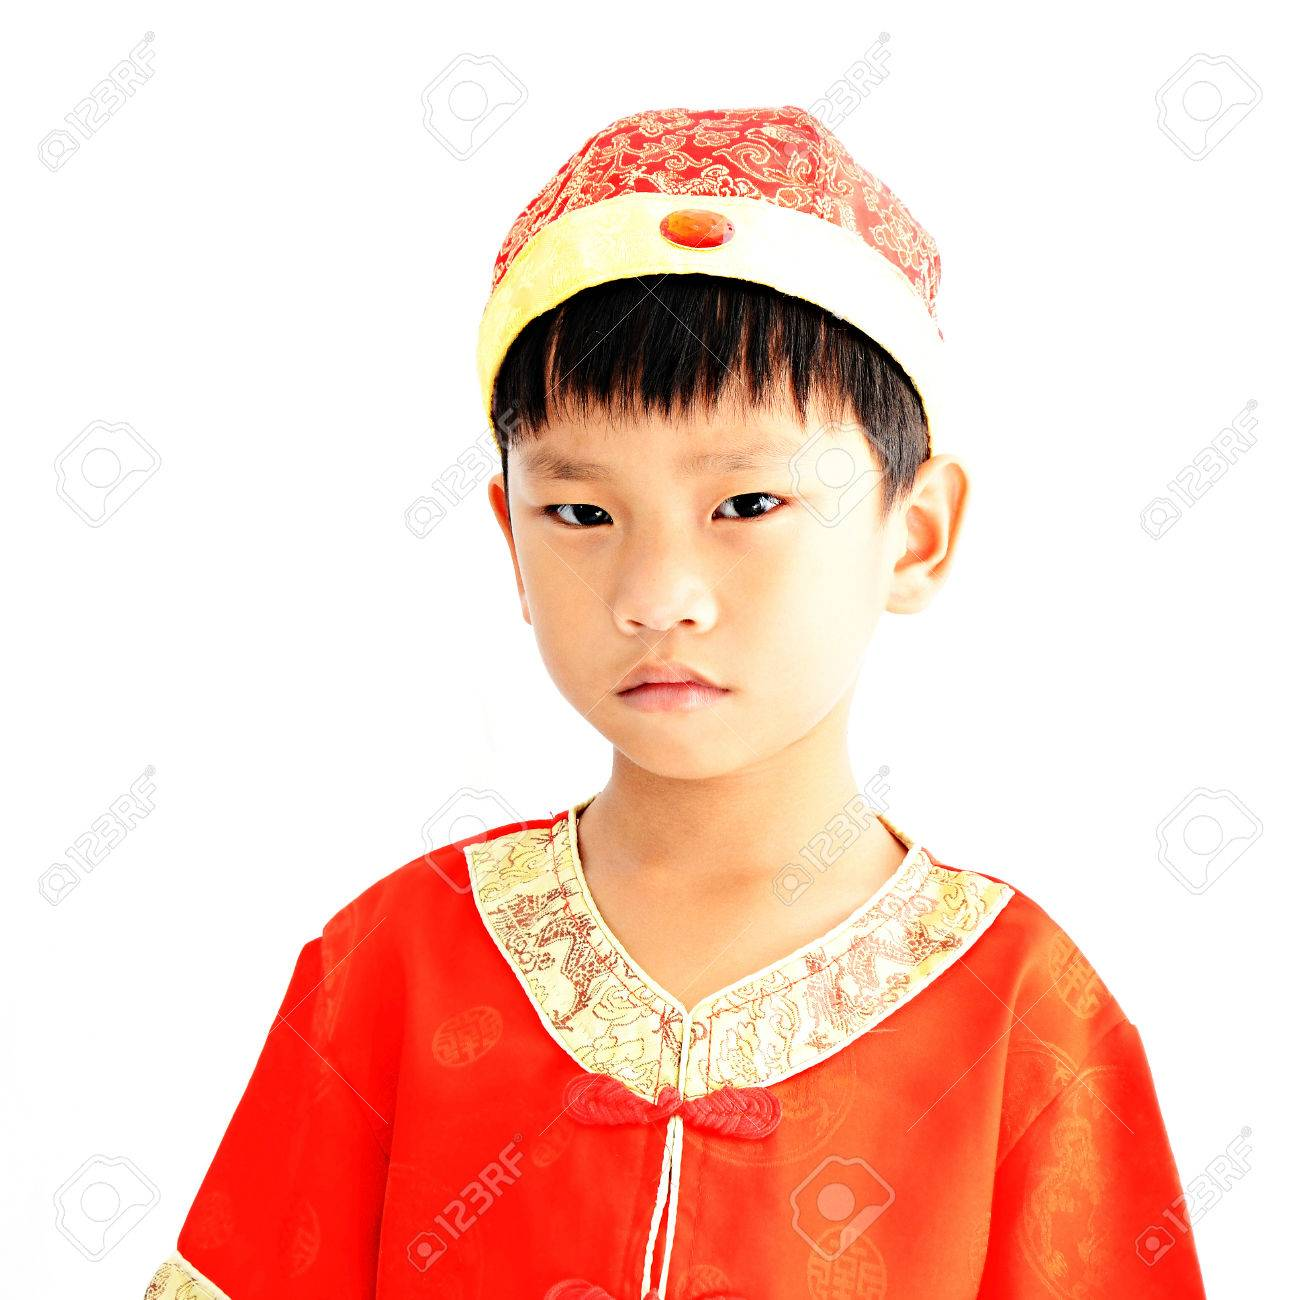 China boy in traditional chinese red tang suit greeting stock photo china boy in traditional chinese red tang suit greeting stock photo 29211140 m4hsunfo